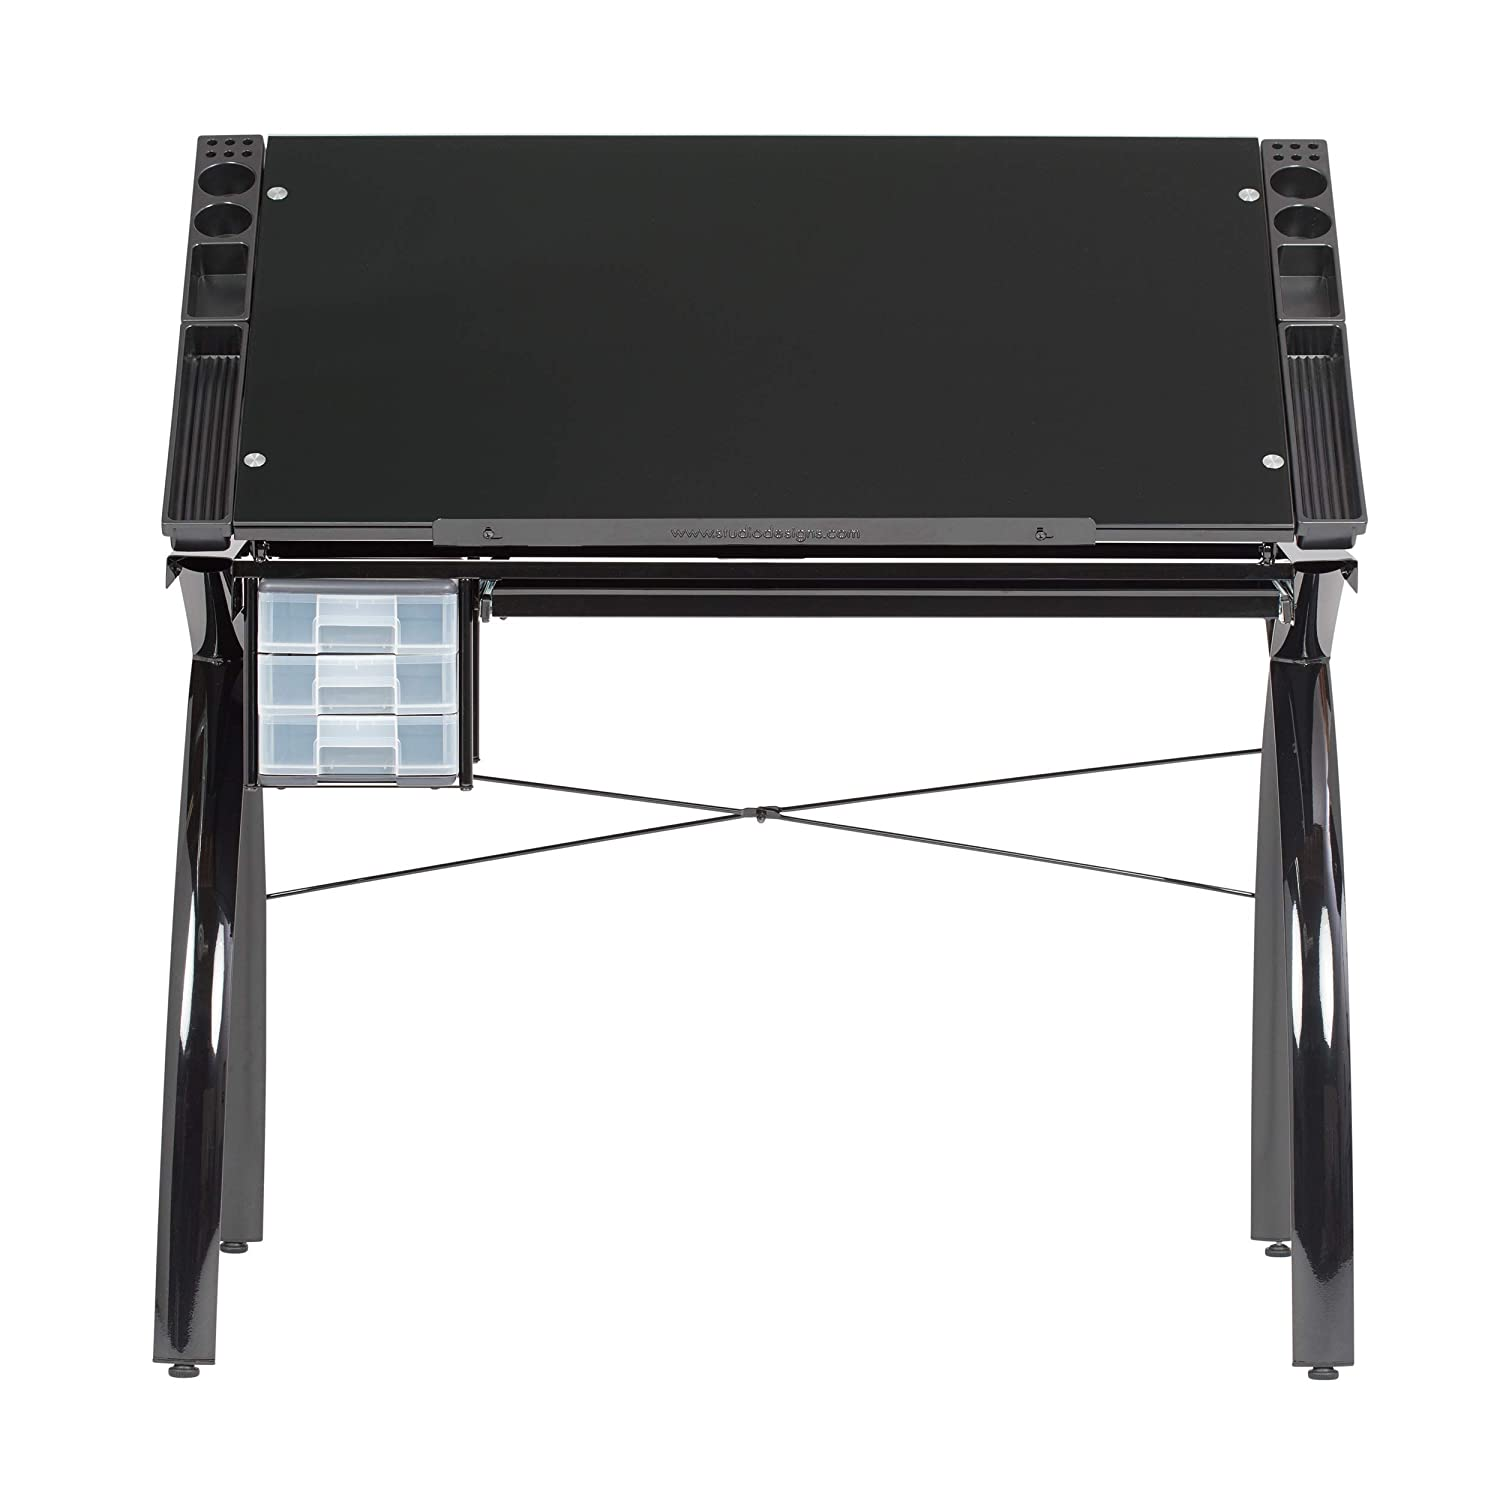 Studio Designs Futura Modern Metal and Glass Hobby Drafting Table Craft Drawing Desk with 38W x 24D Angle Adjustable Top in Black // Black Glass